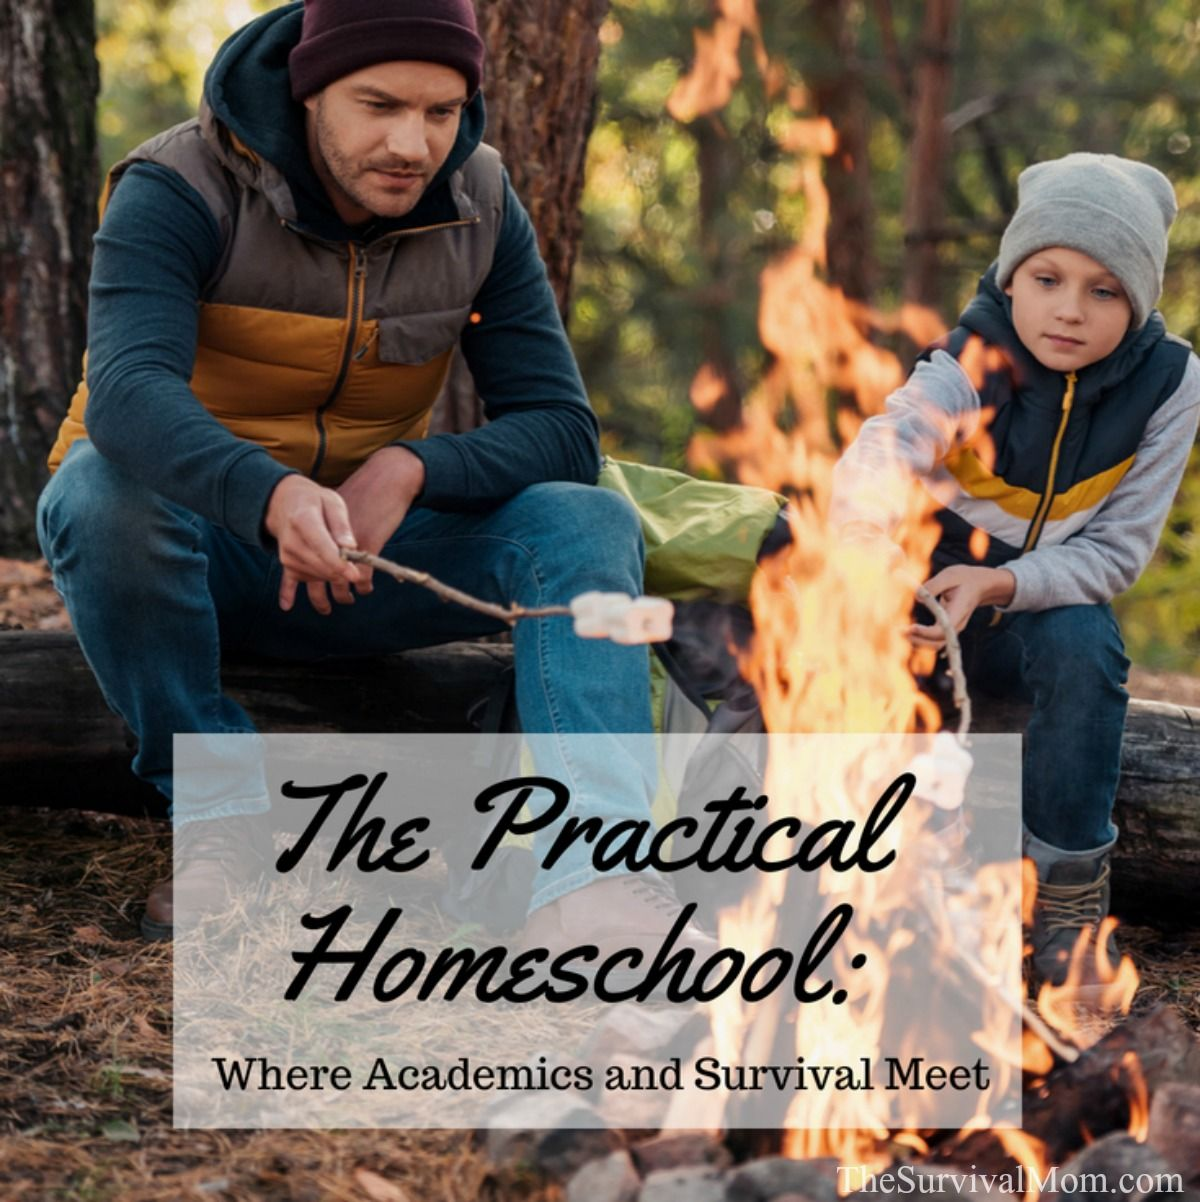 The Practical Homeschool Where Academics and Survival Meet via The Survival Mom